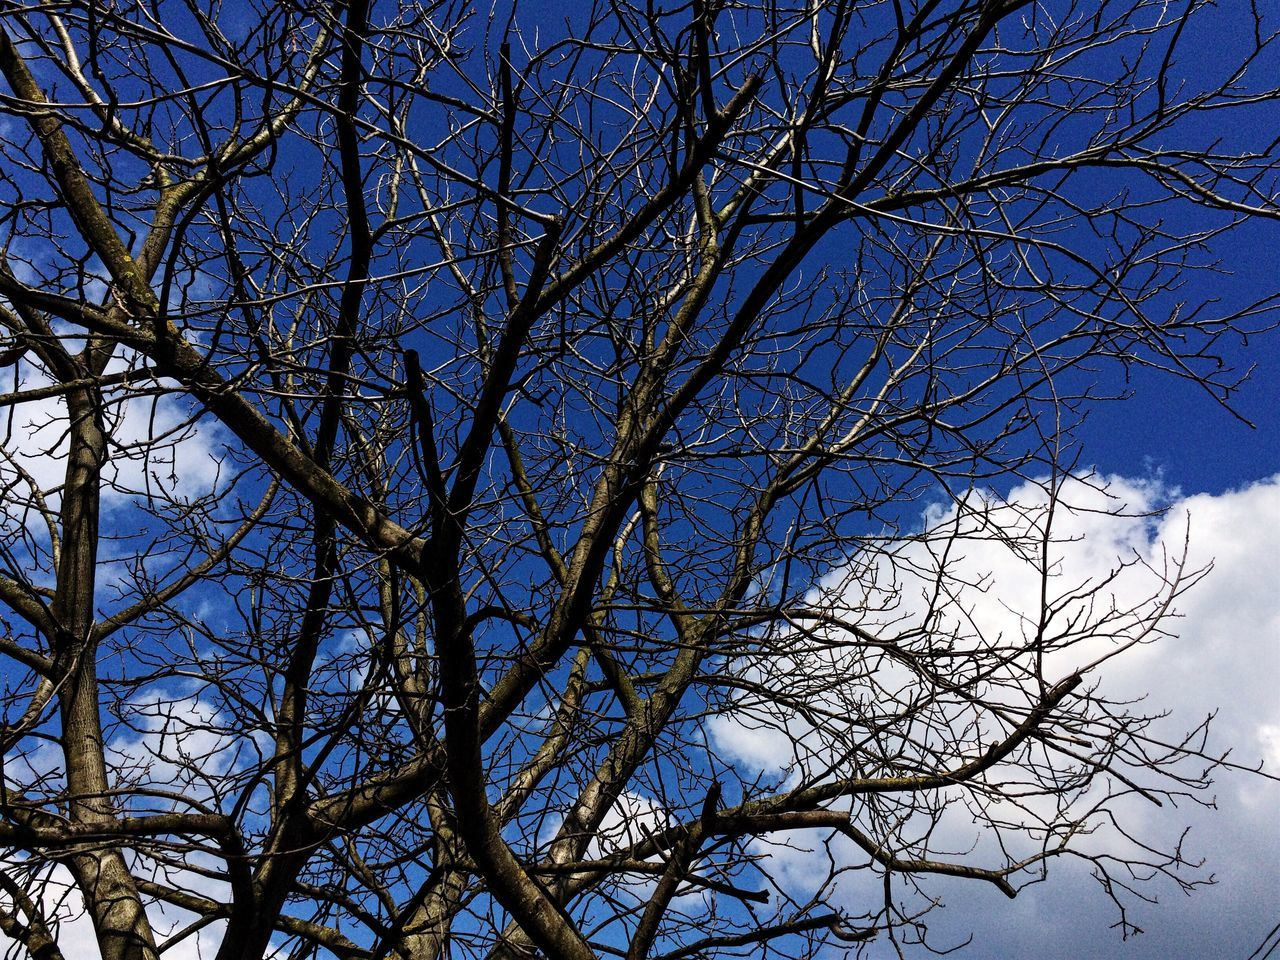 bare tree, tree, branch, nature, sky, beauty in nature, low angle view, blue, no people, tranquility, outdoors, day, growth, scenics